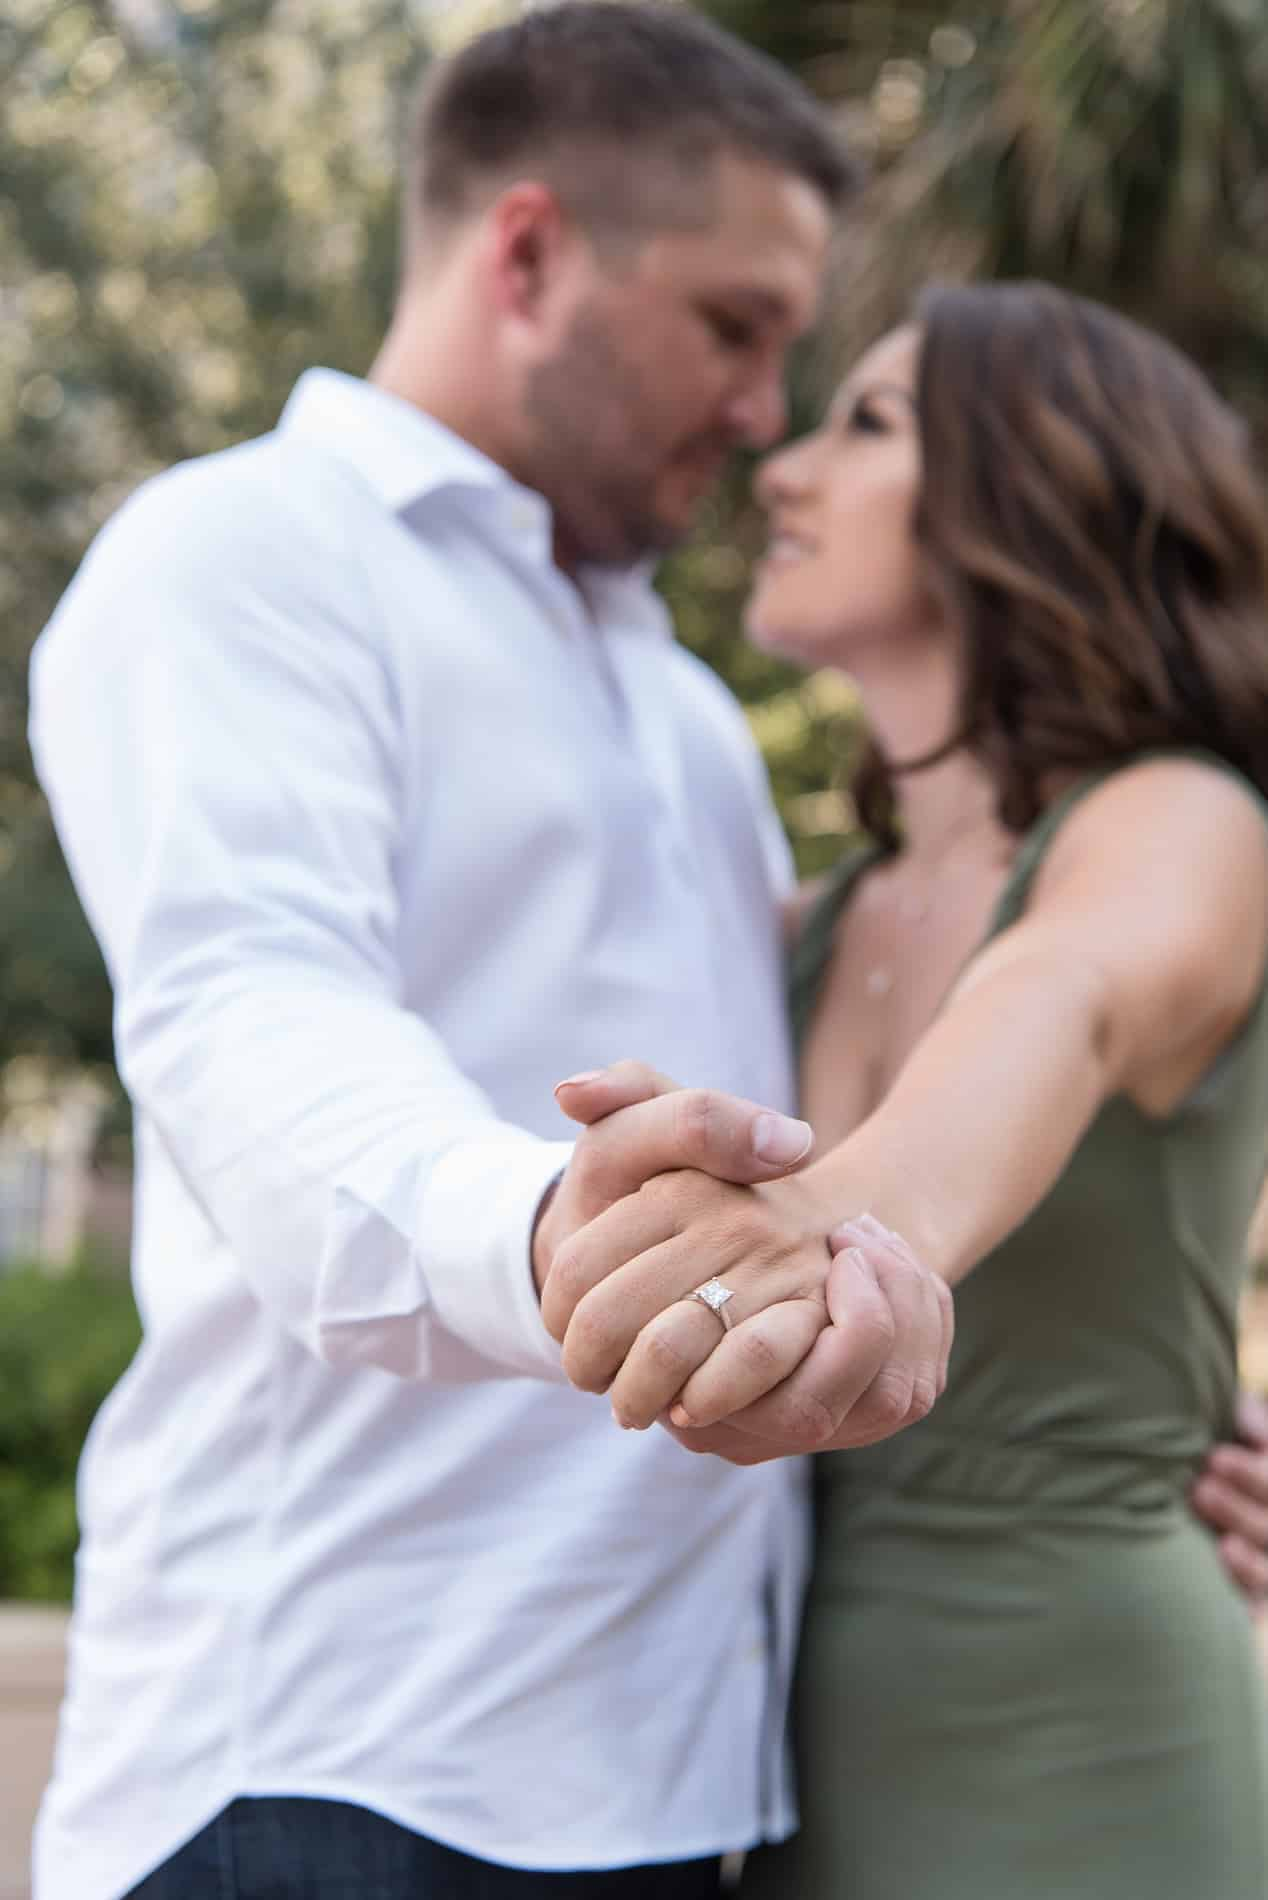 Focusing on the engagement ring during their Downtown Orlando Photos